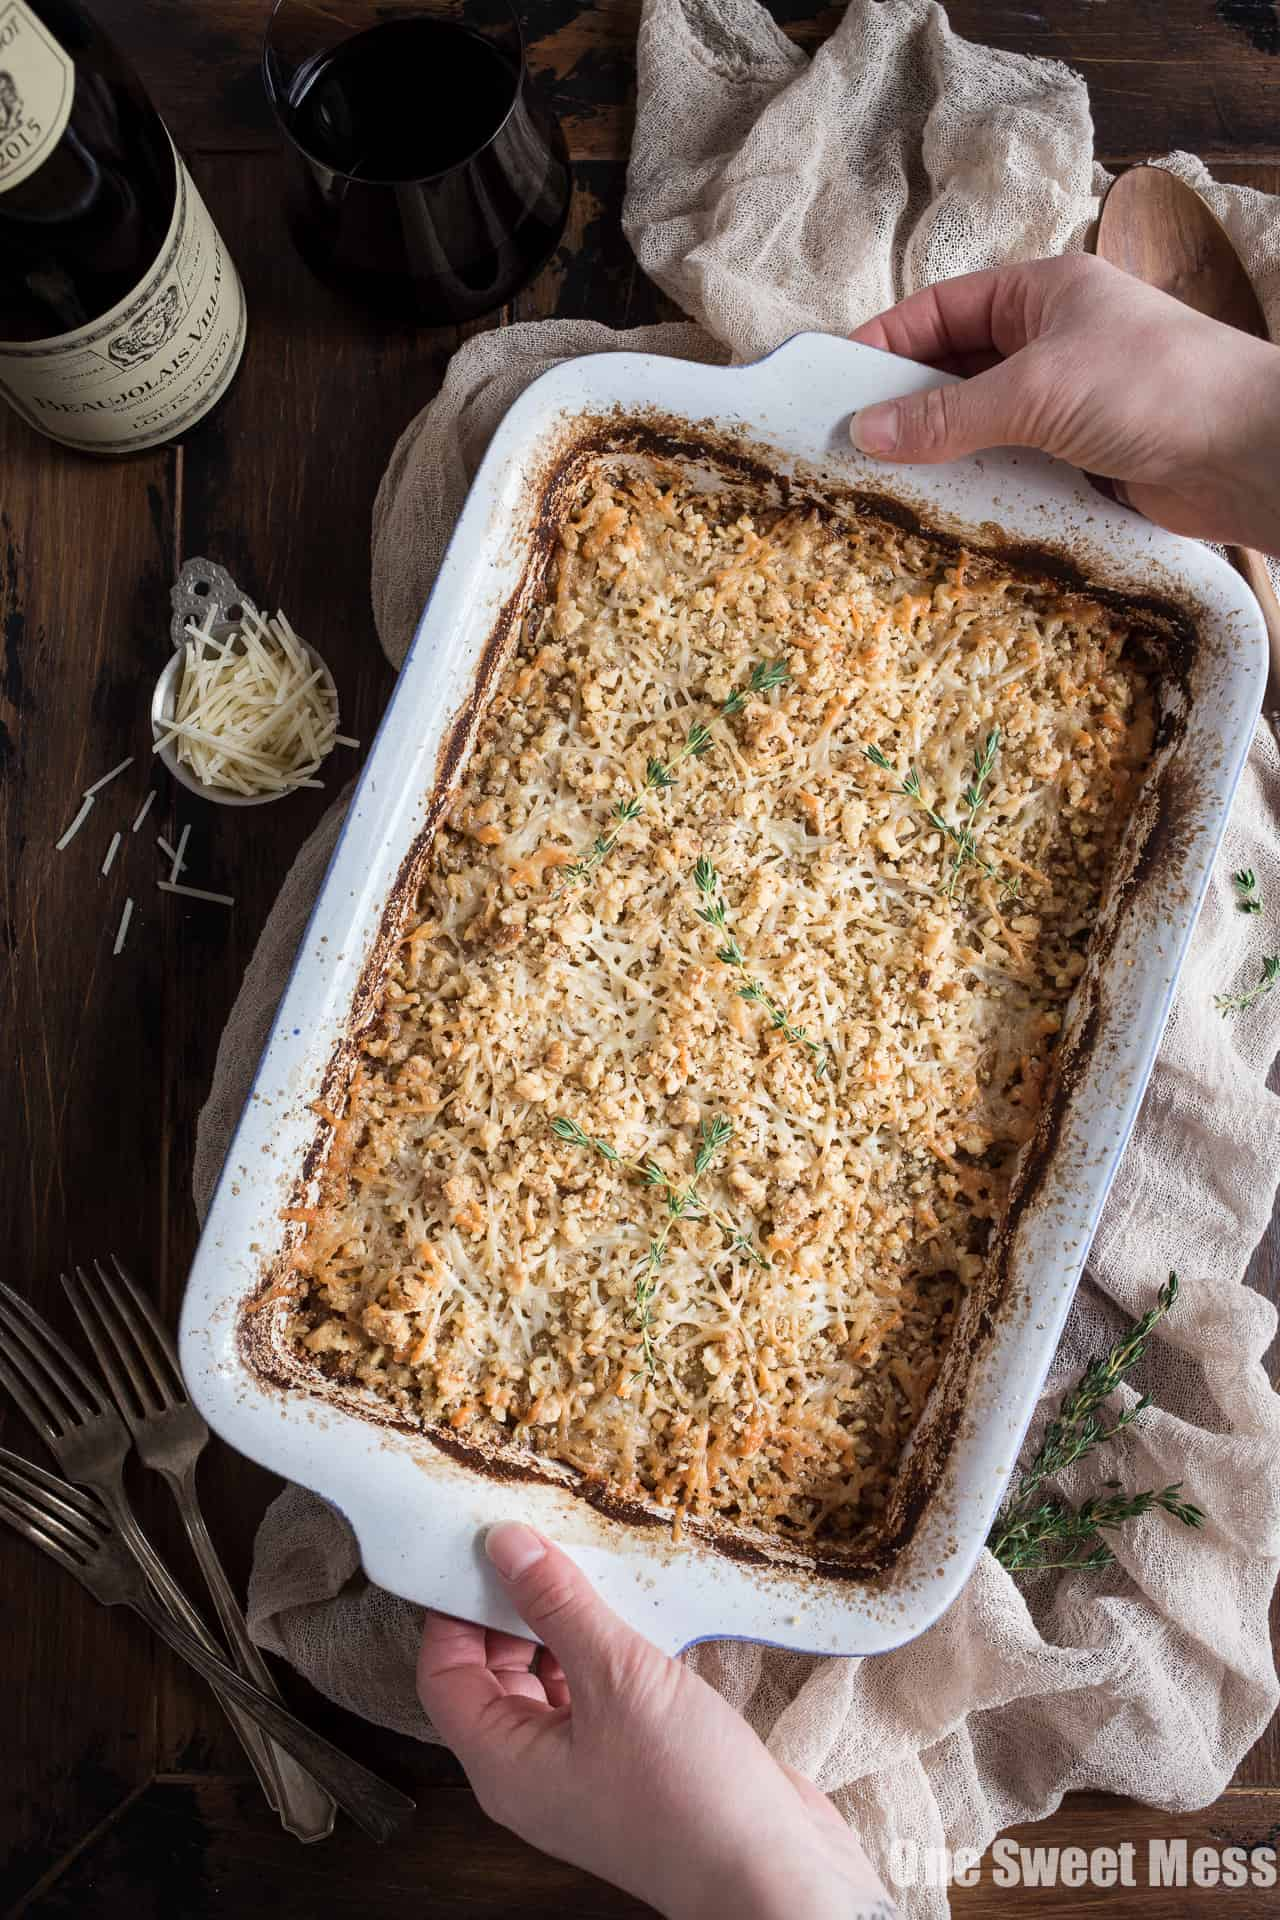 Potato Leek Gratin: This creamy spring side dish is loaded with cheese and topped with a toasted walnut crumble.